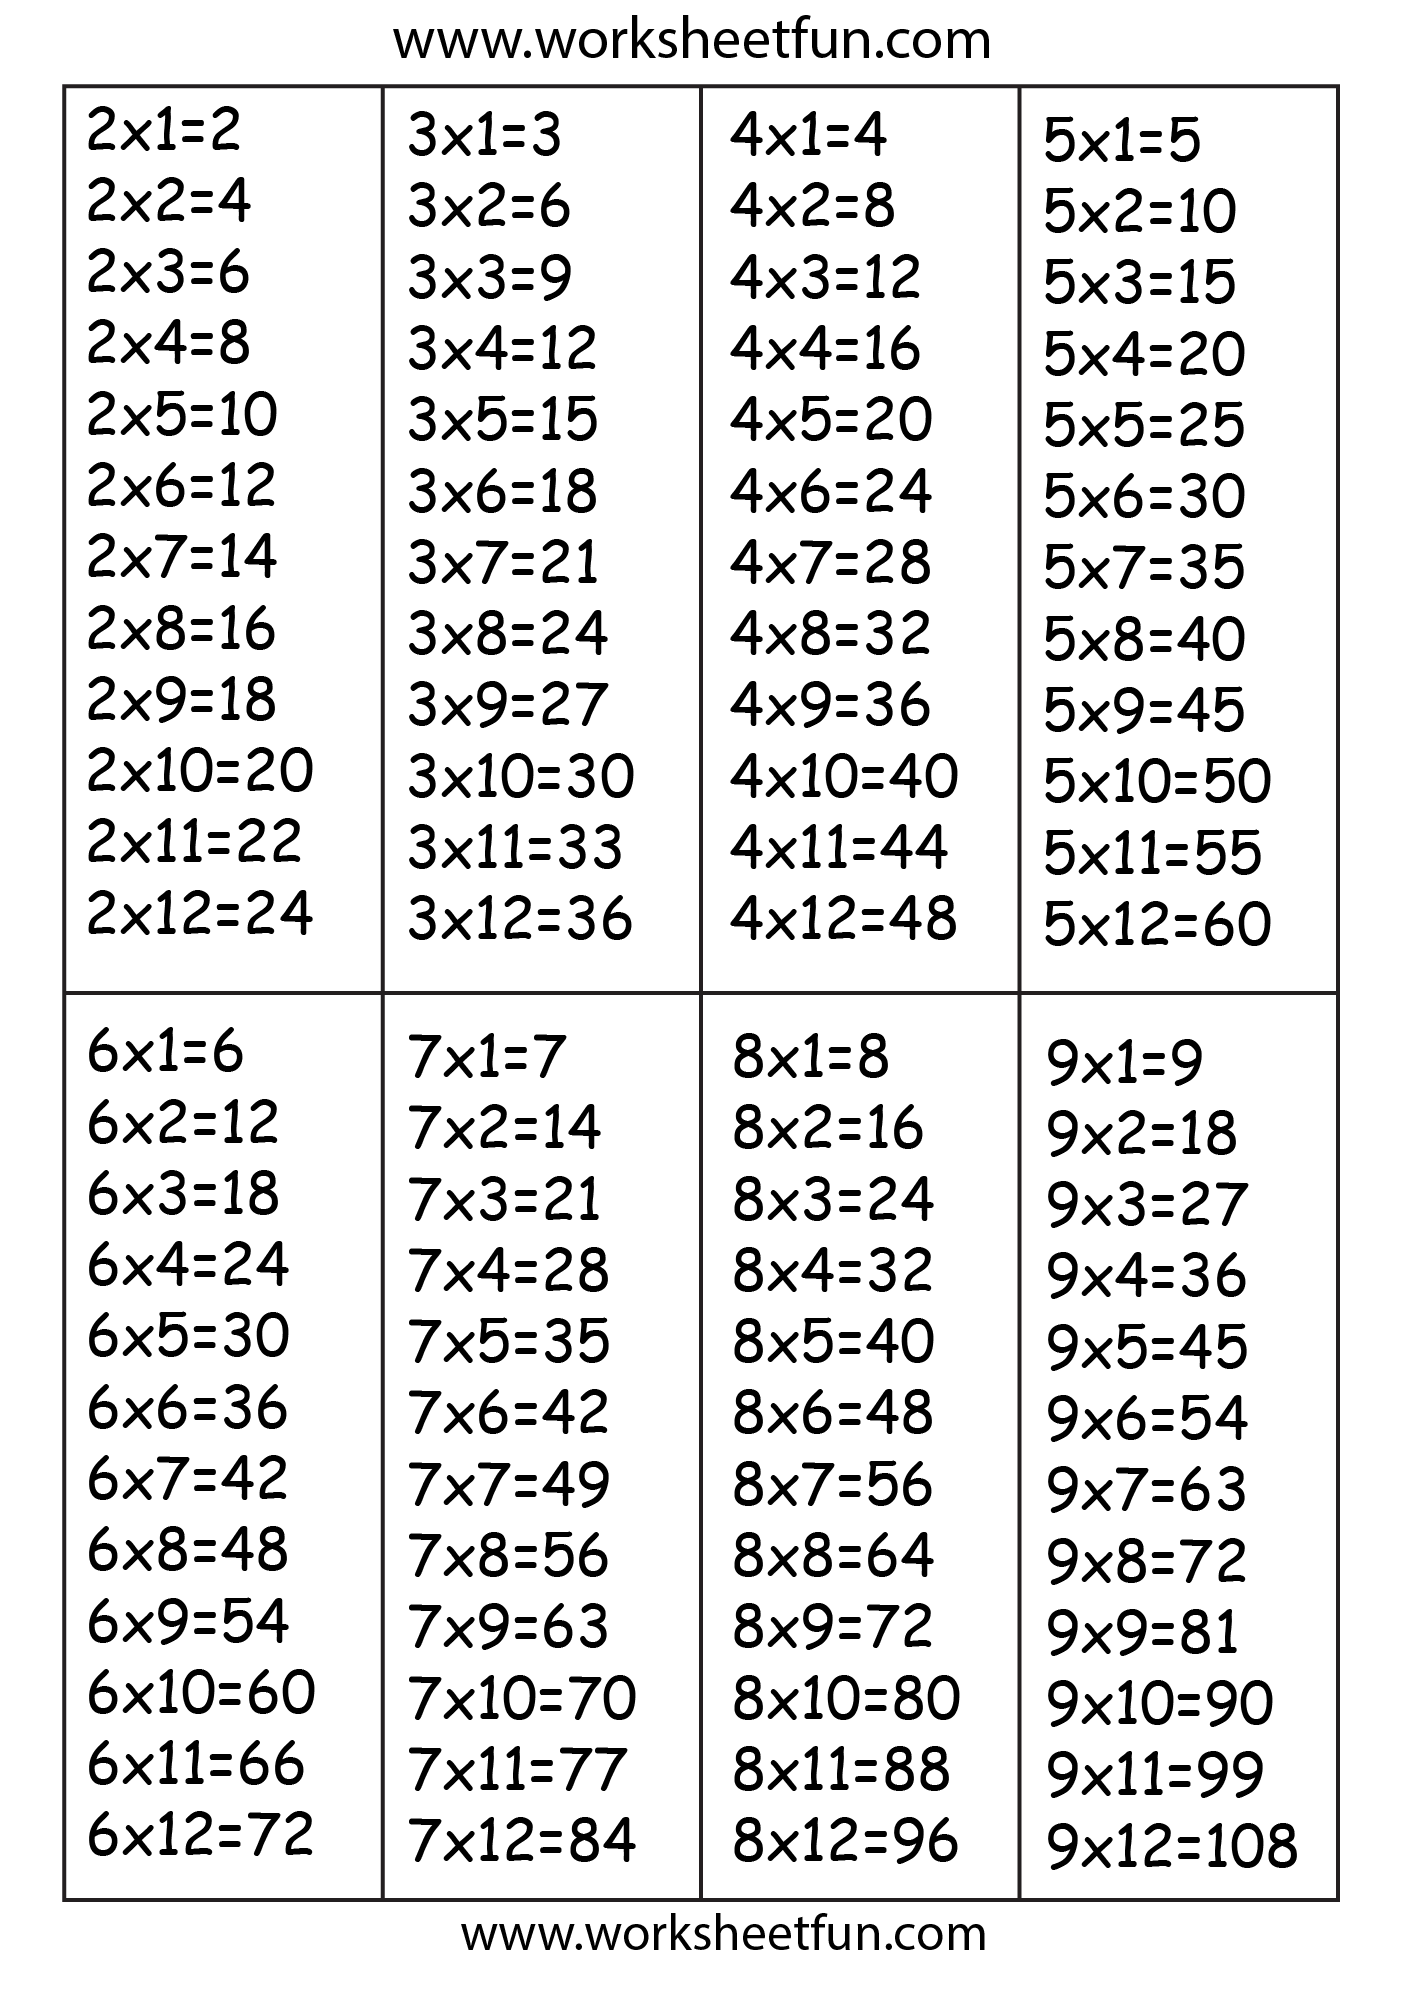 Times Tables FREE Printable Worksheets Worksheetfun – Multiplication Tables Worksheets